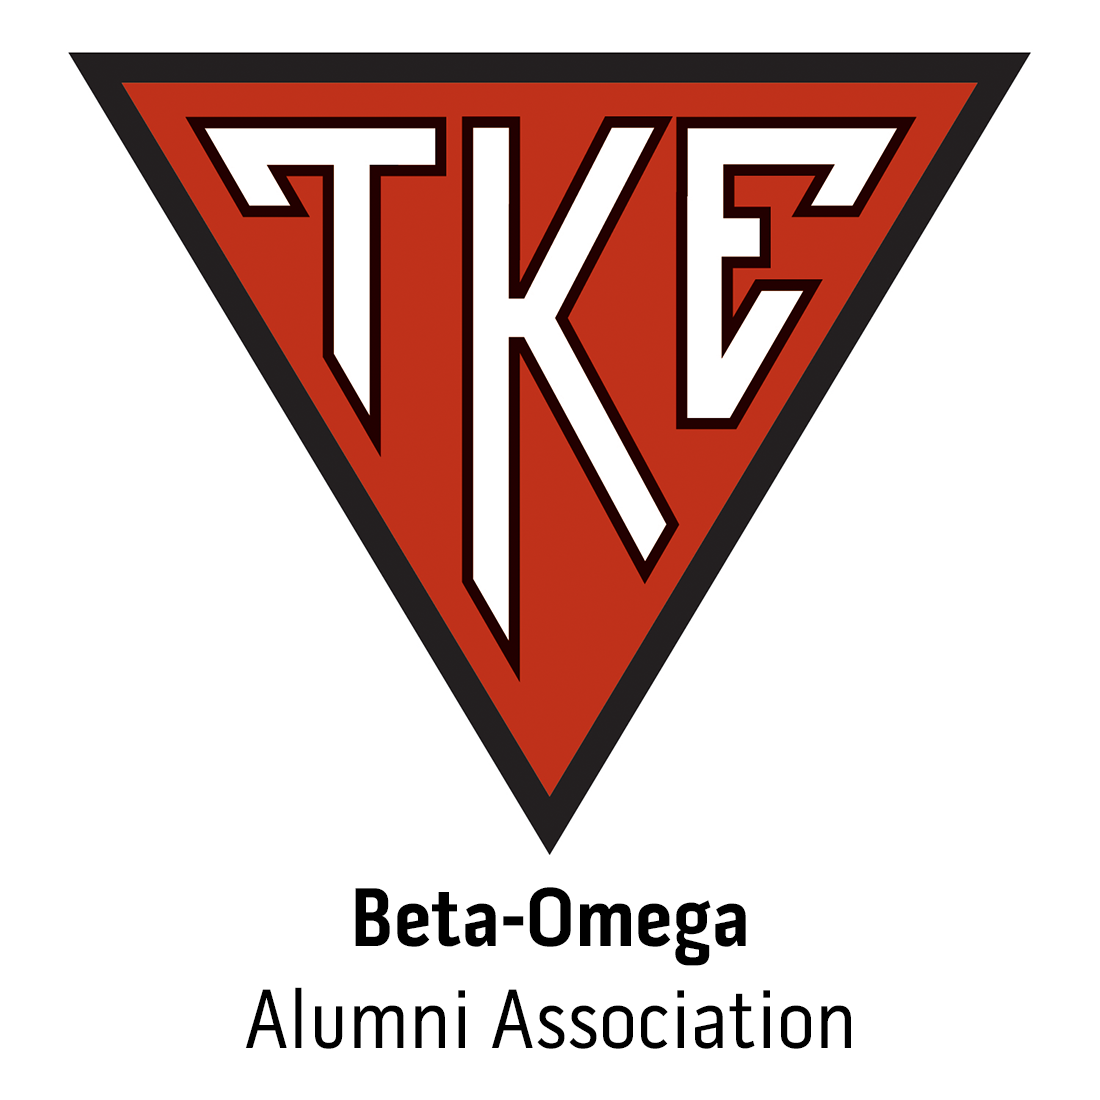 Beta-Omega Alumni Association at Missouri State University